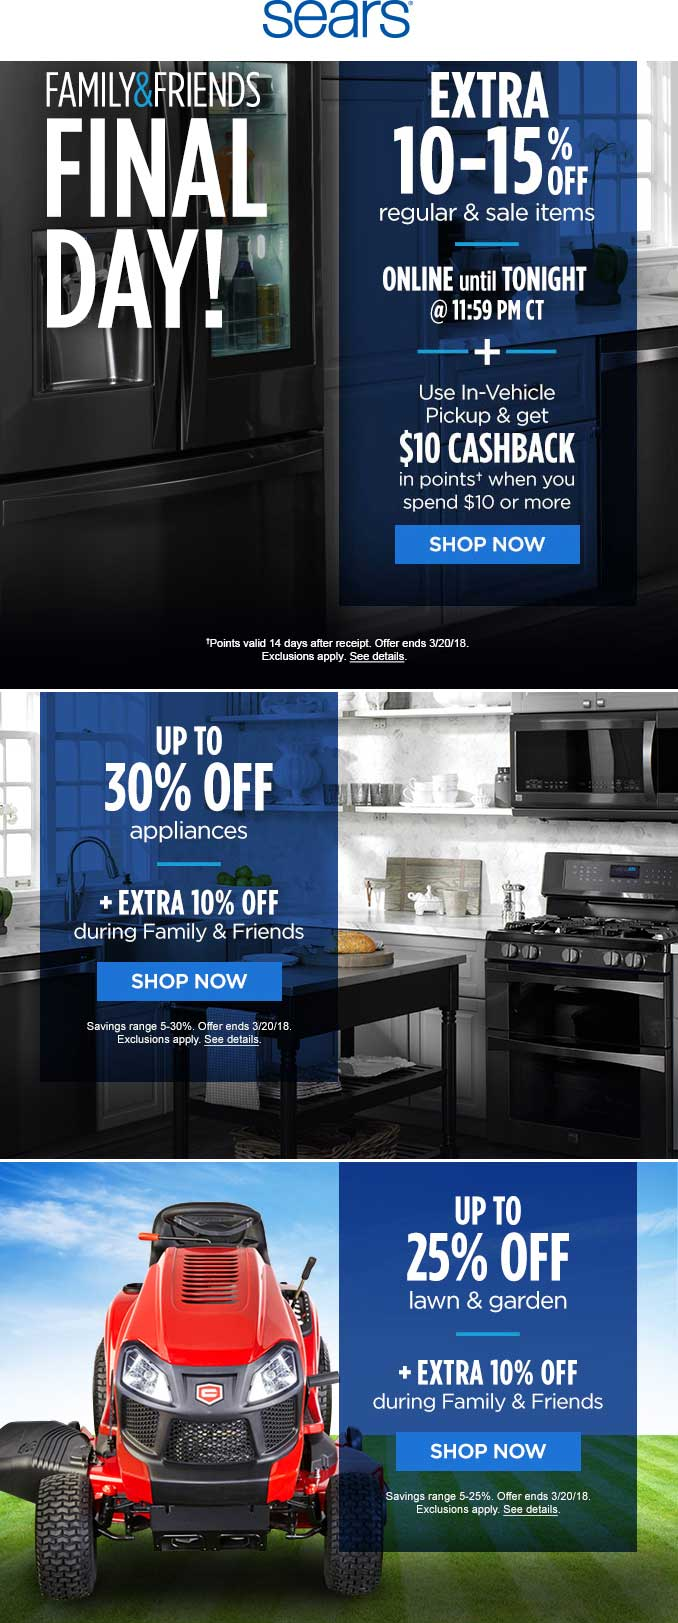 Sears Coupon August 2018 10-15% off online today at Sears